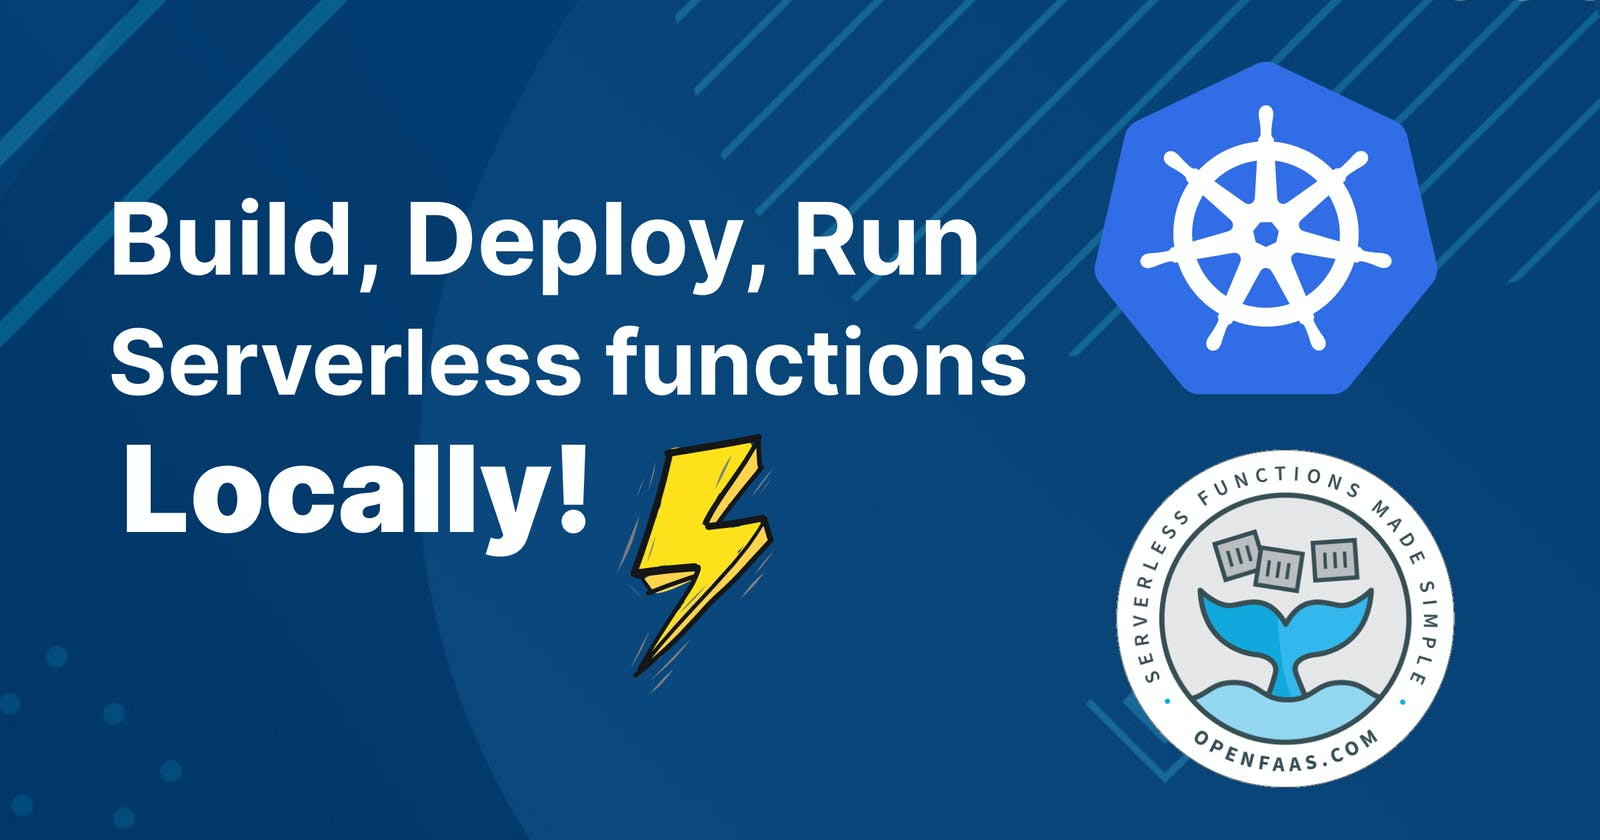 Deploy your Serverless Python function locally with OpenFaas in Kubernetes